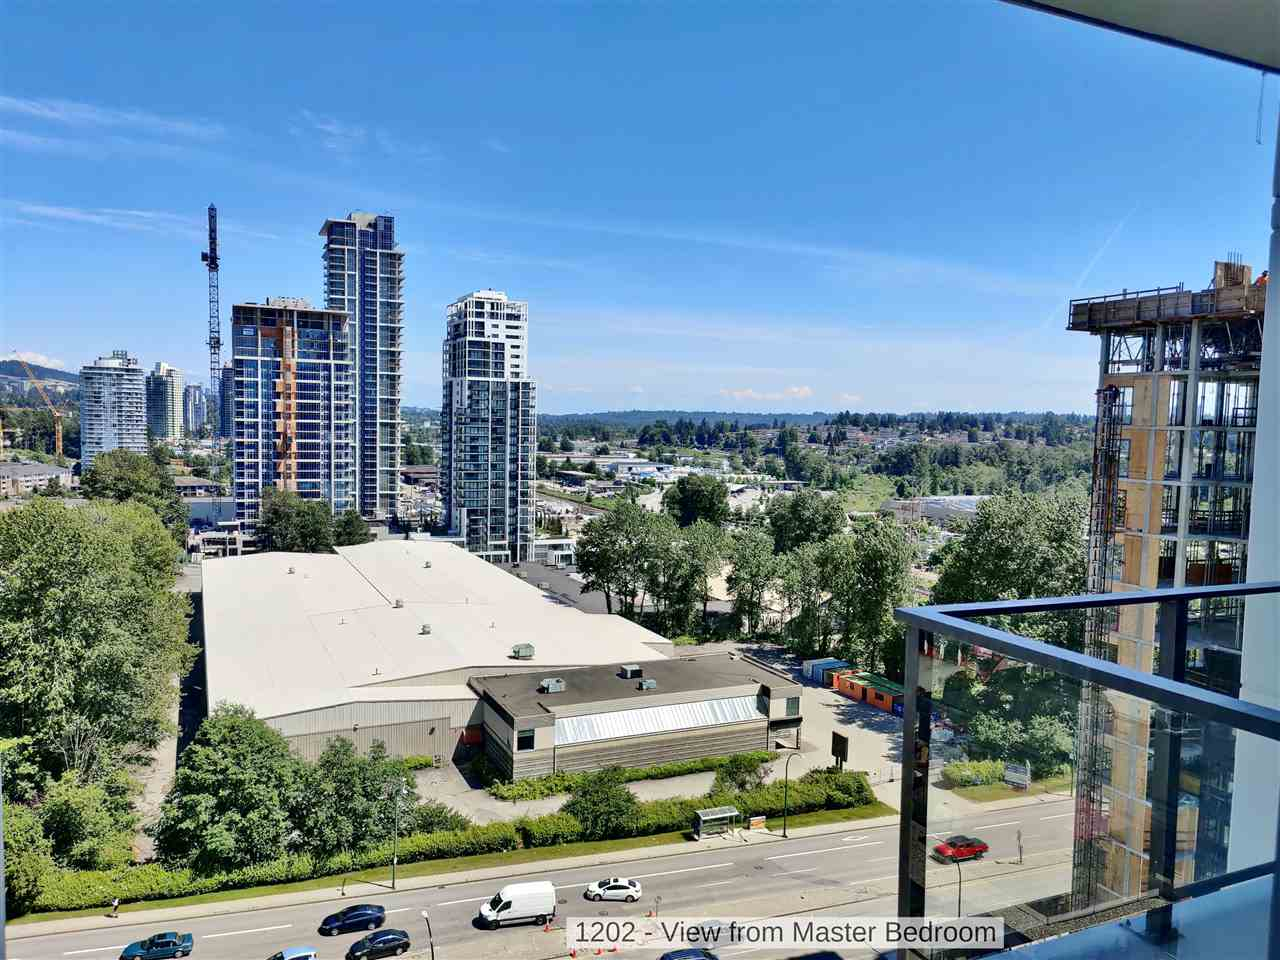 1202 4465 JUNEAU STREET - Brentwood Park Apartment/Condo for sale, 1 Bedroom (R2470011) - #25